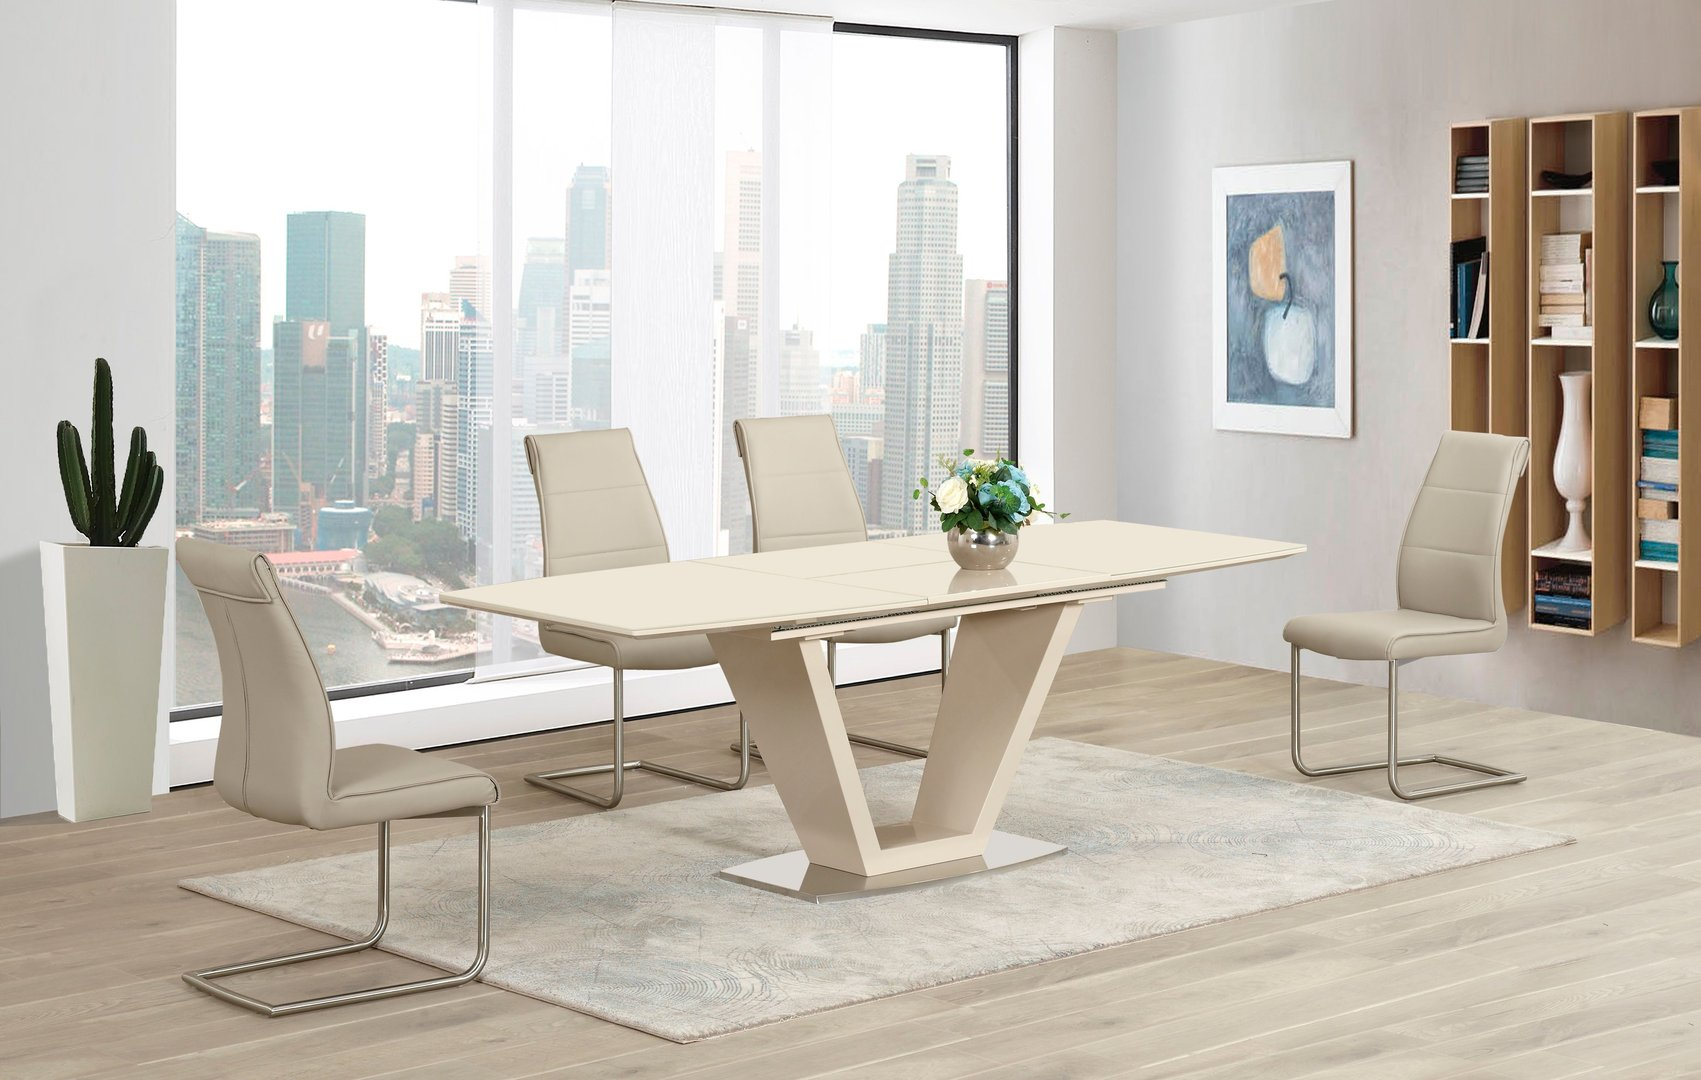 Cream Extending Glass High Gloss Dining Table And 6 Taupe Chairs Set ... Part 53